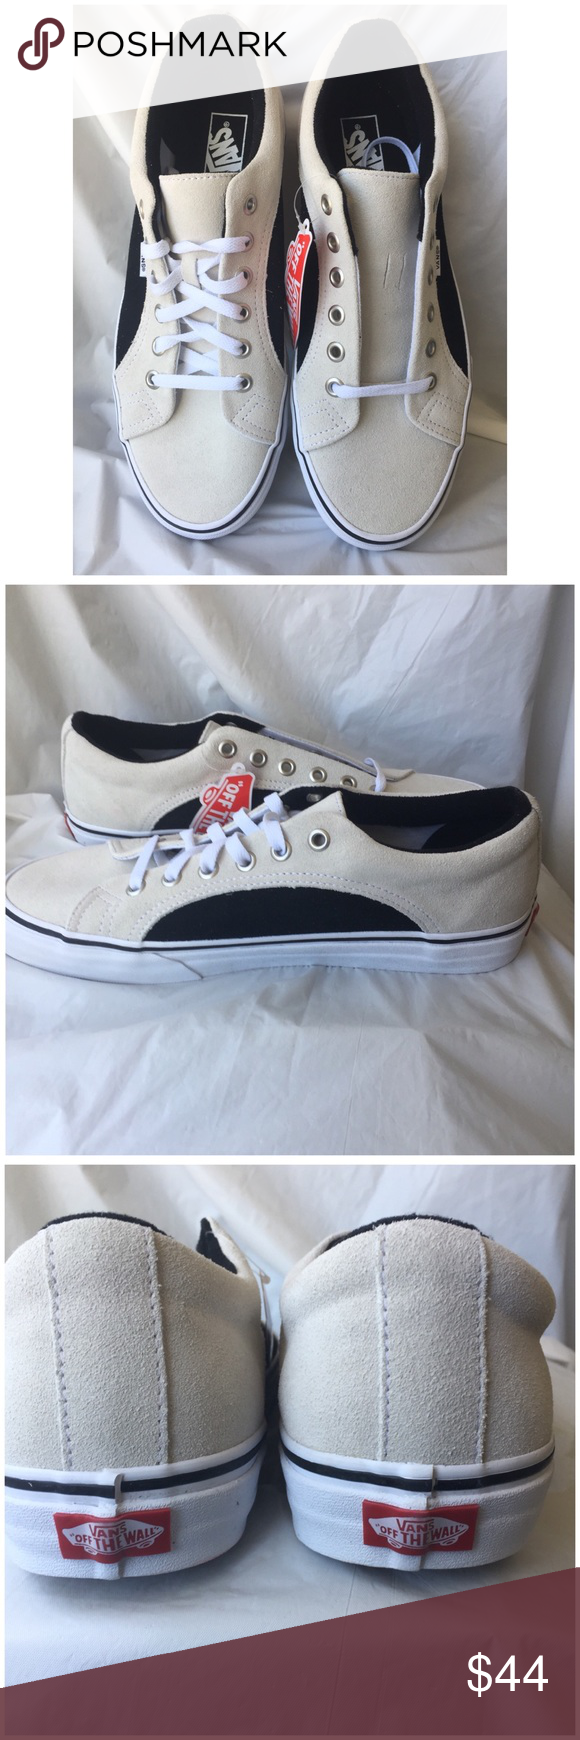 ad92bf737e Vans Lampin (2-tone Suede) 80 Suede upper Lace up with metal eyelets  Signature waffle outsole Color  True white Black New